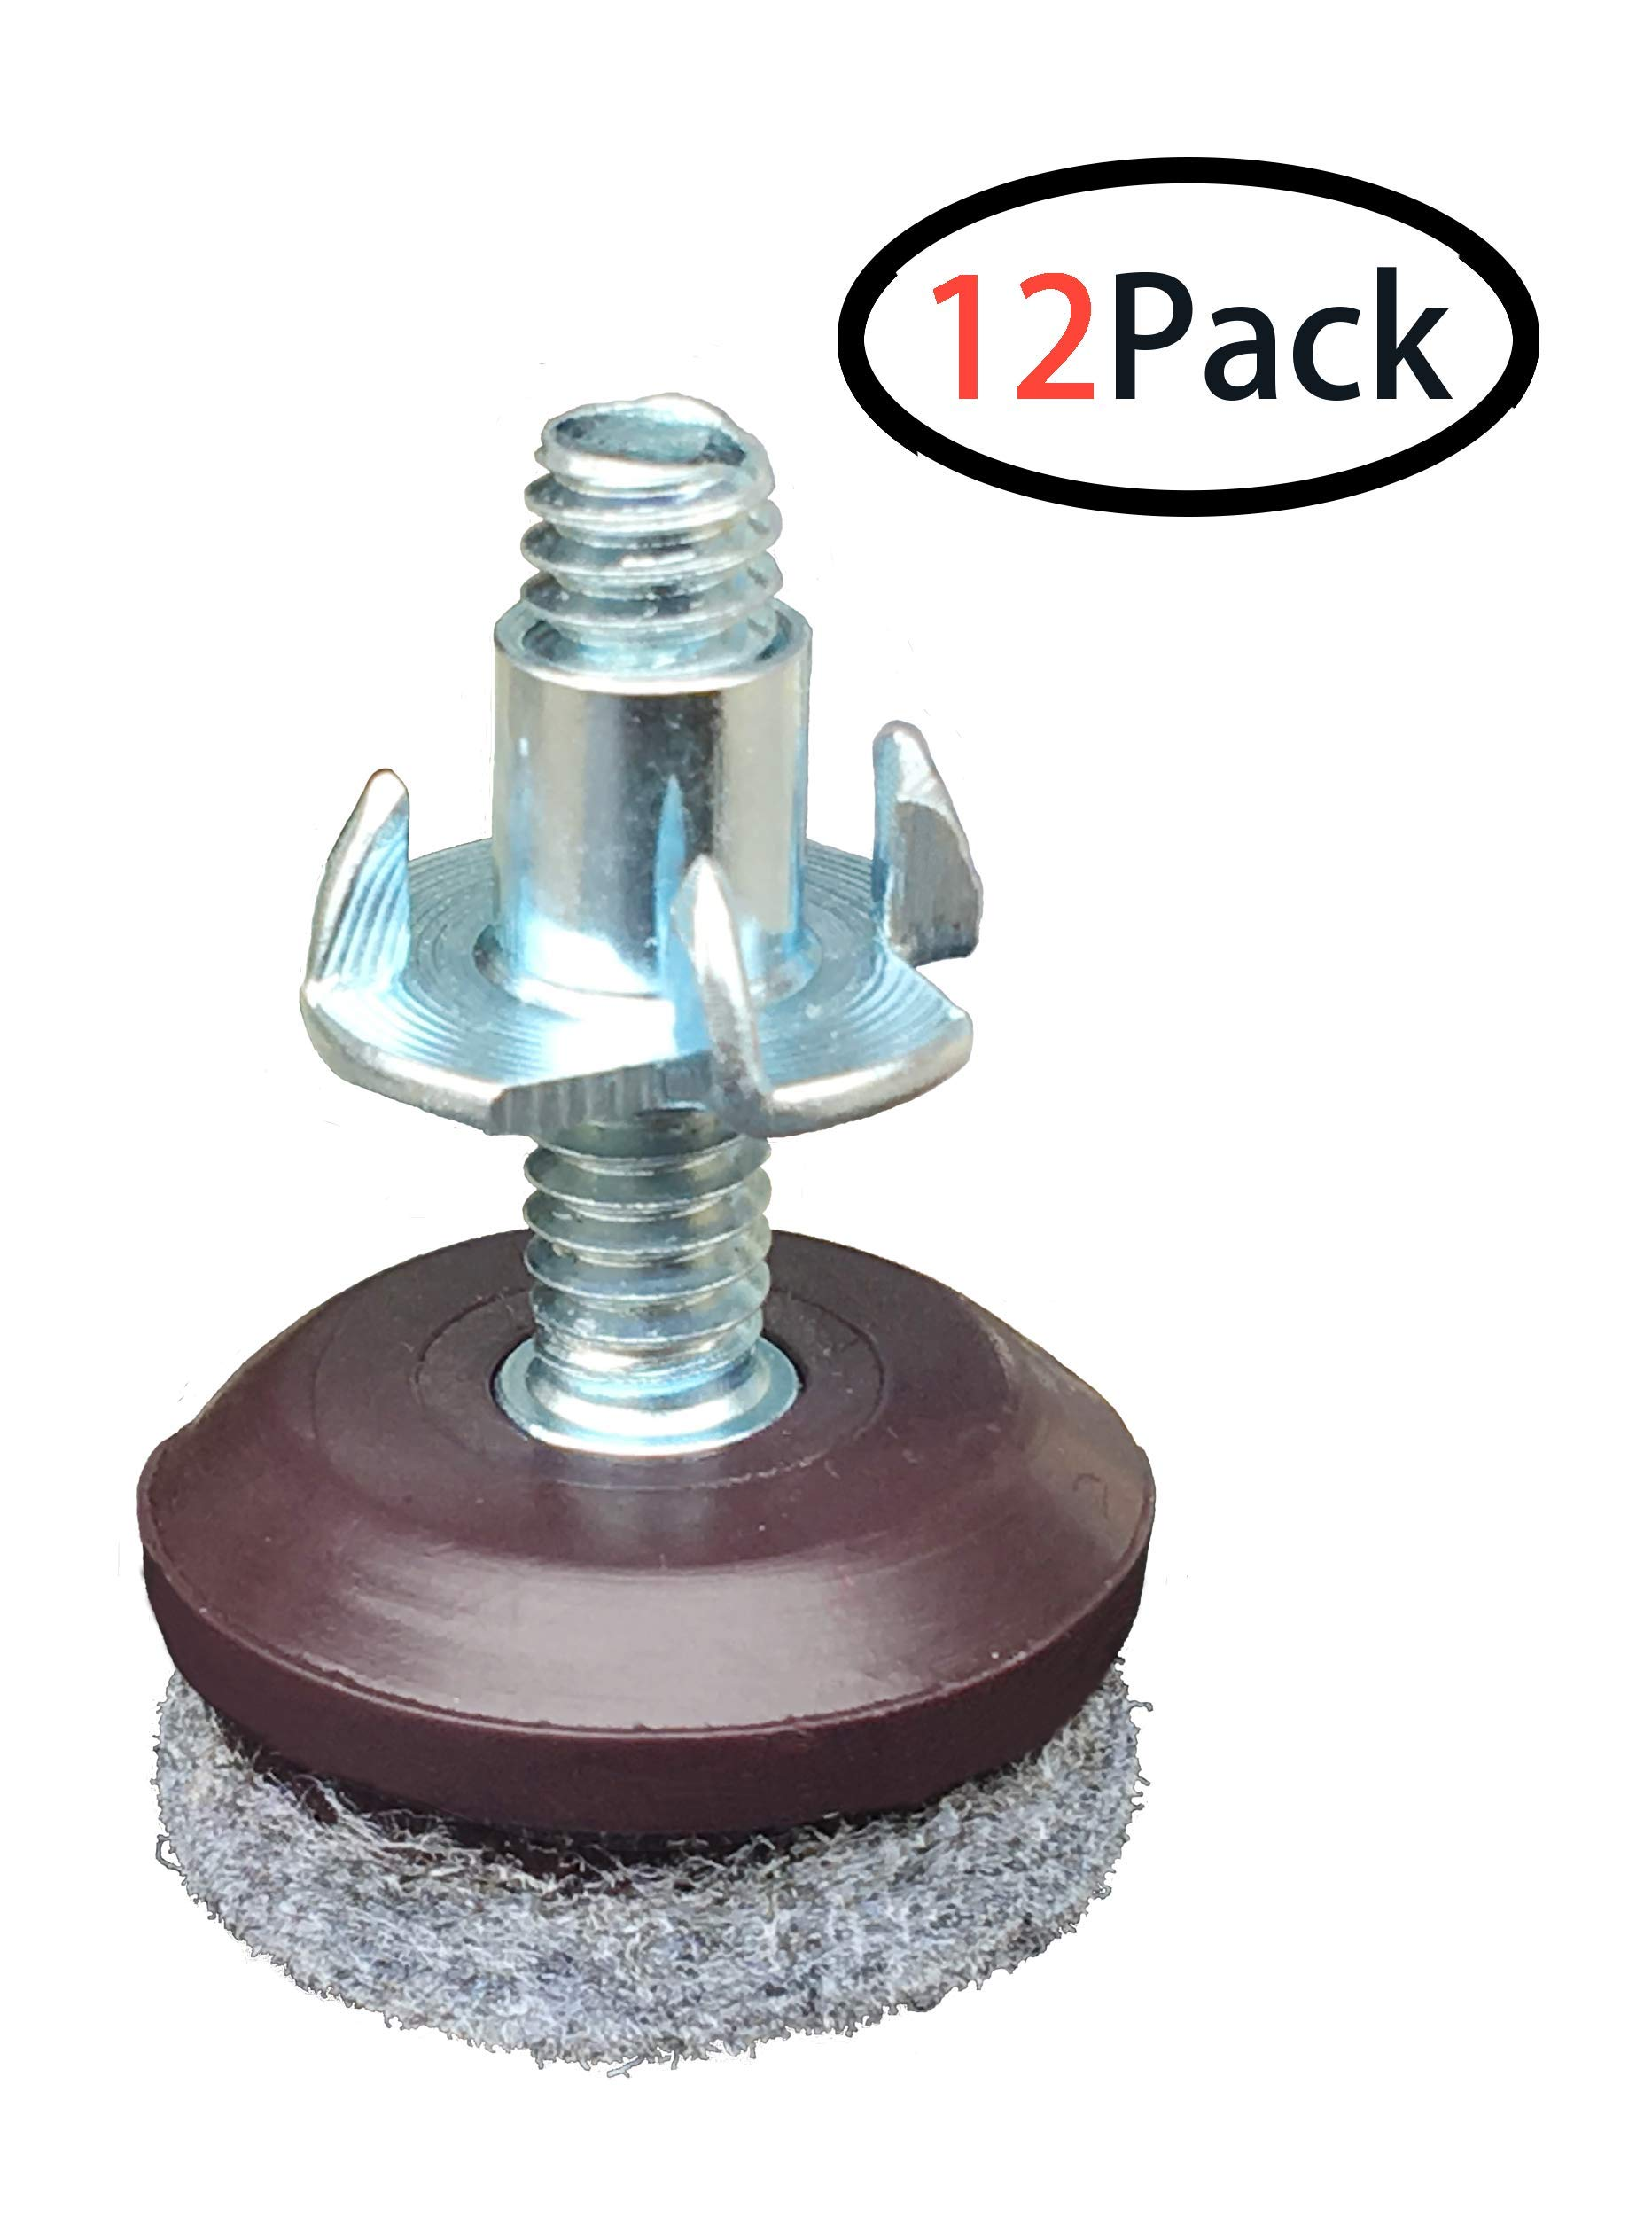 1 inch Furniture Levelers - Adjusting Felt Pads for Chair Legs and Furniture - Table Leveling Feet - 1/4-20 Adjustable Furniture Foot - 12 Pack.